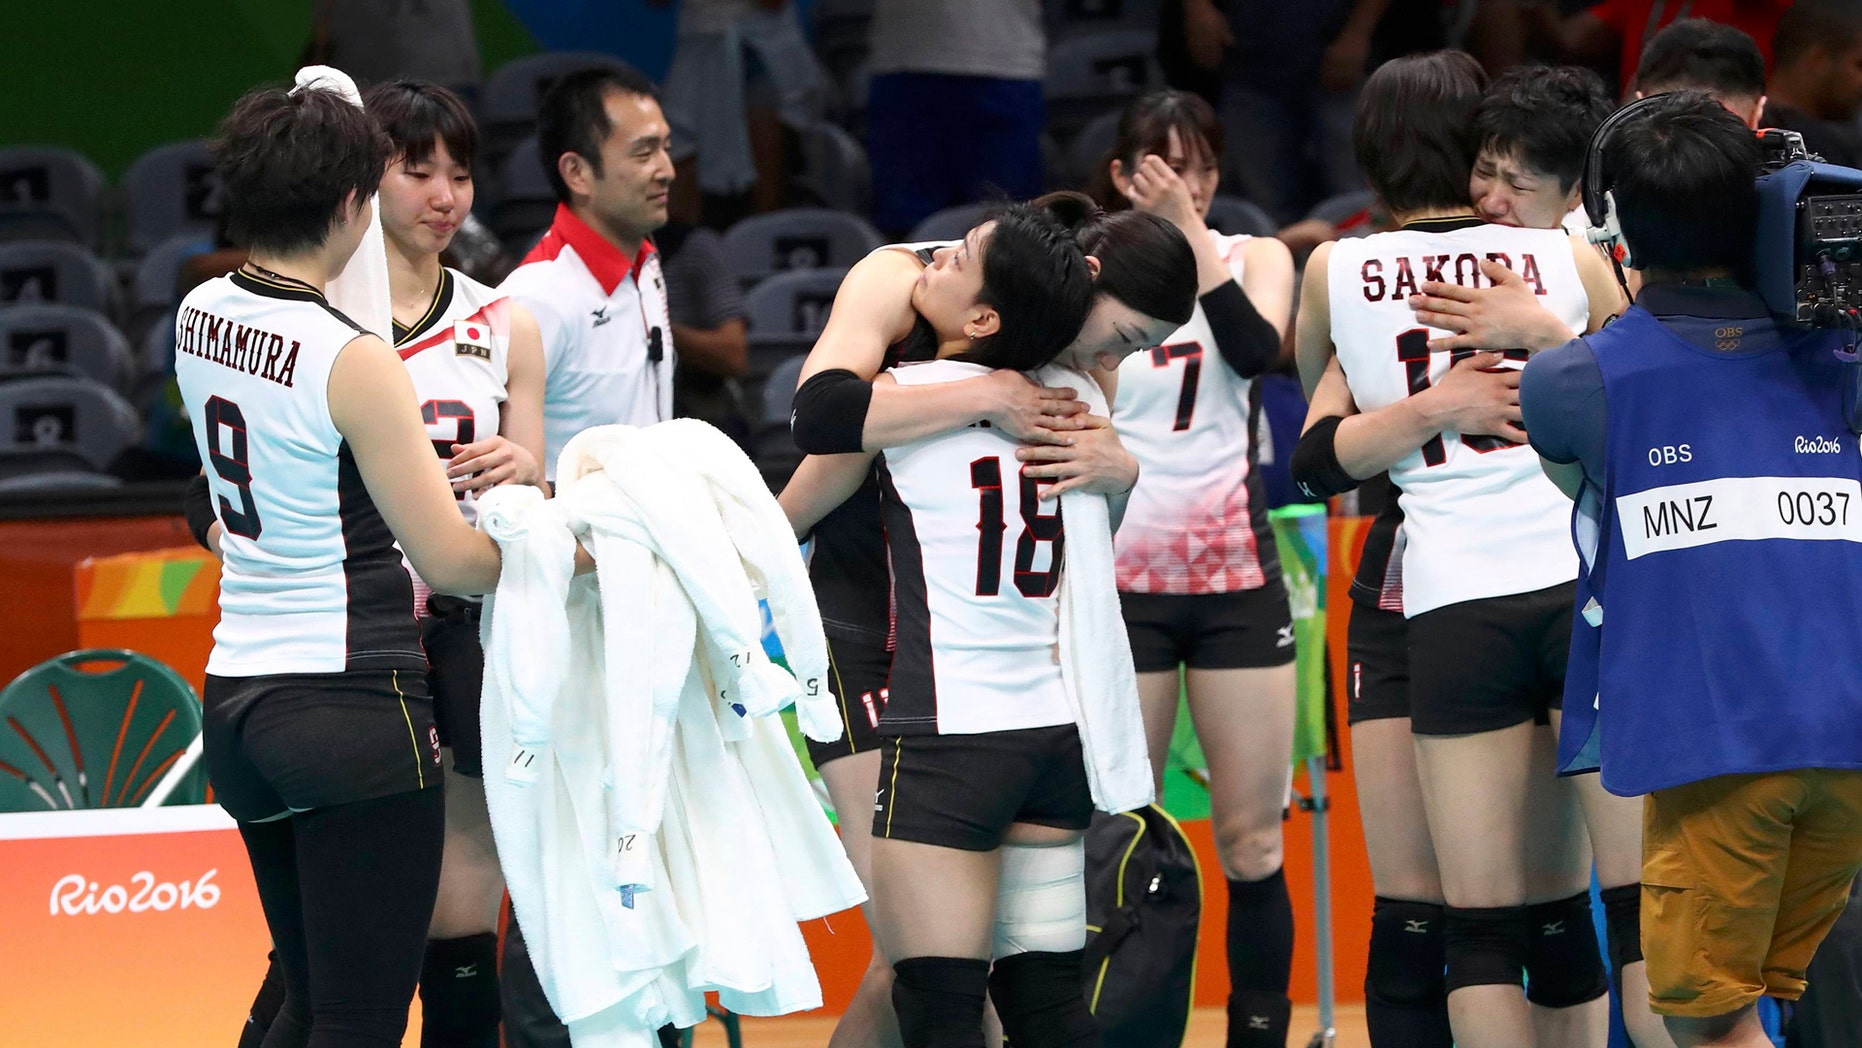 File photo: 2016 Rio Olympics - Volleyball Women's Quarterfinals - Japan v USA - Maracanazinho - Rio de Janeiro, Brazil - 16/08/2016. Japanese team players reacts after losing to the USA. (REUTERS/Yves Herman)